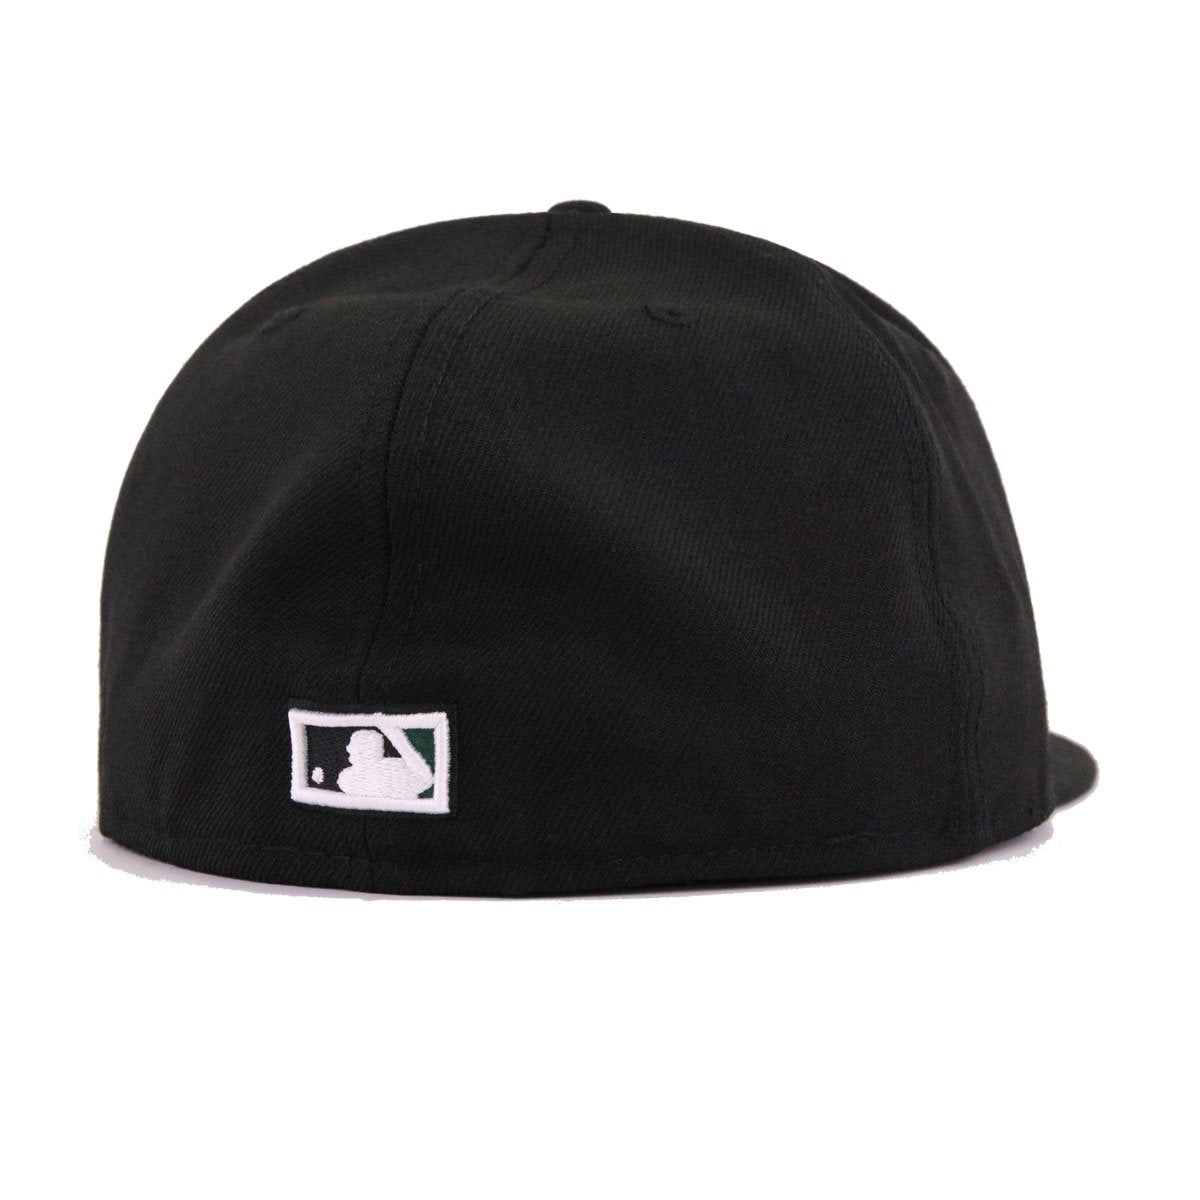 Tampa Bay Rays Black Cooperstown New Era 59Fifty Fitted